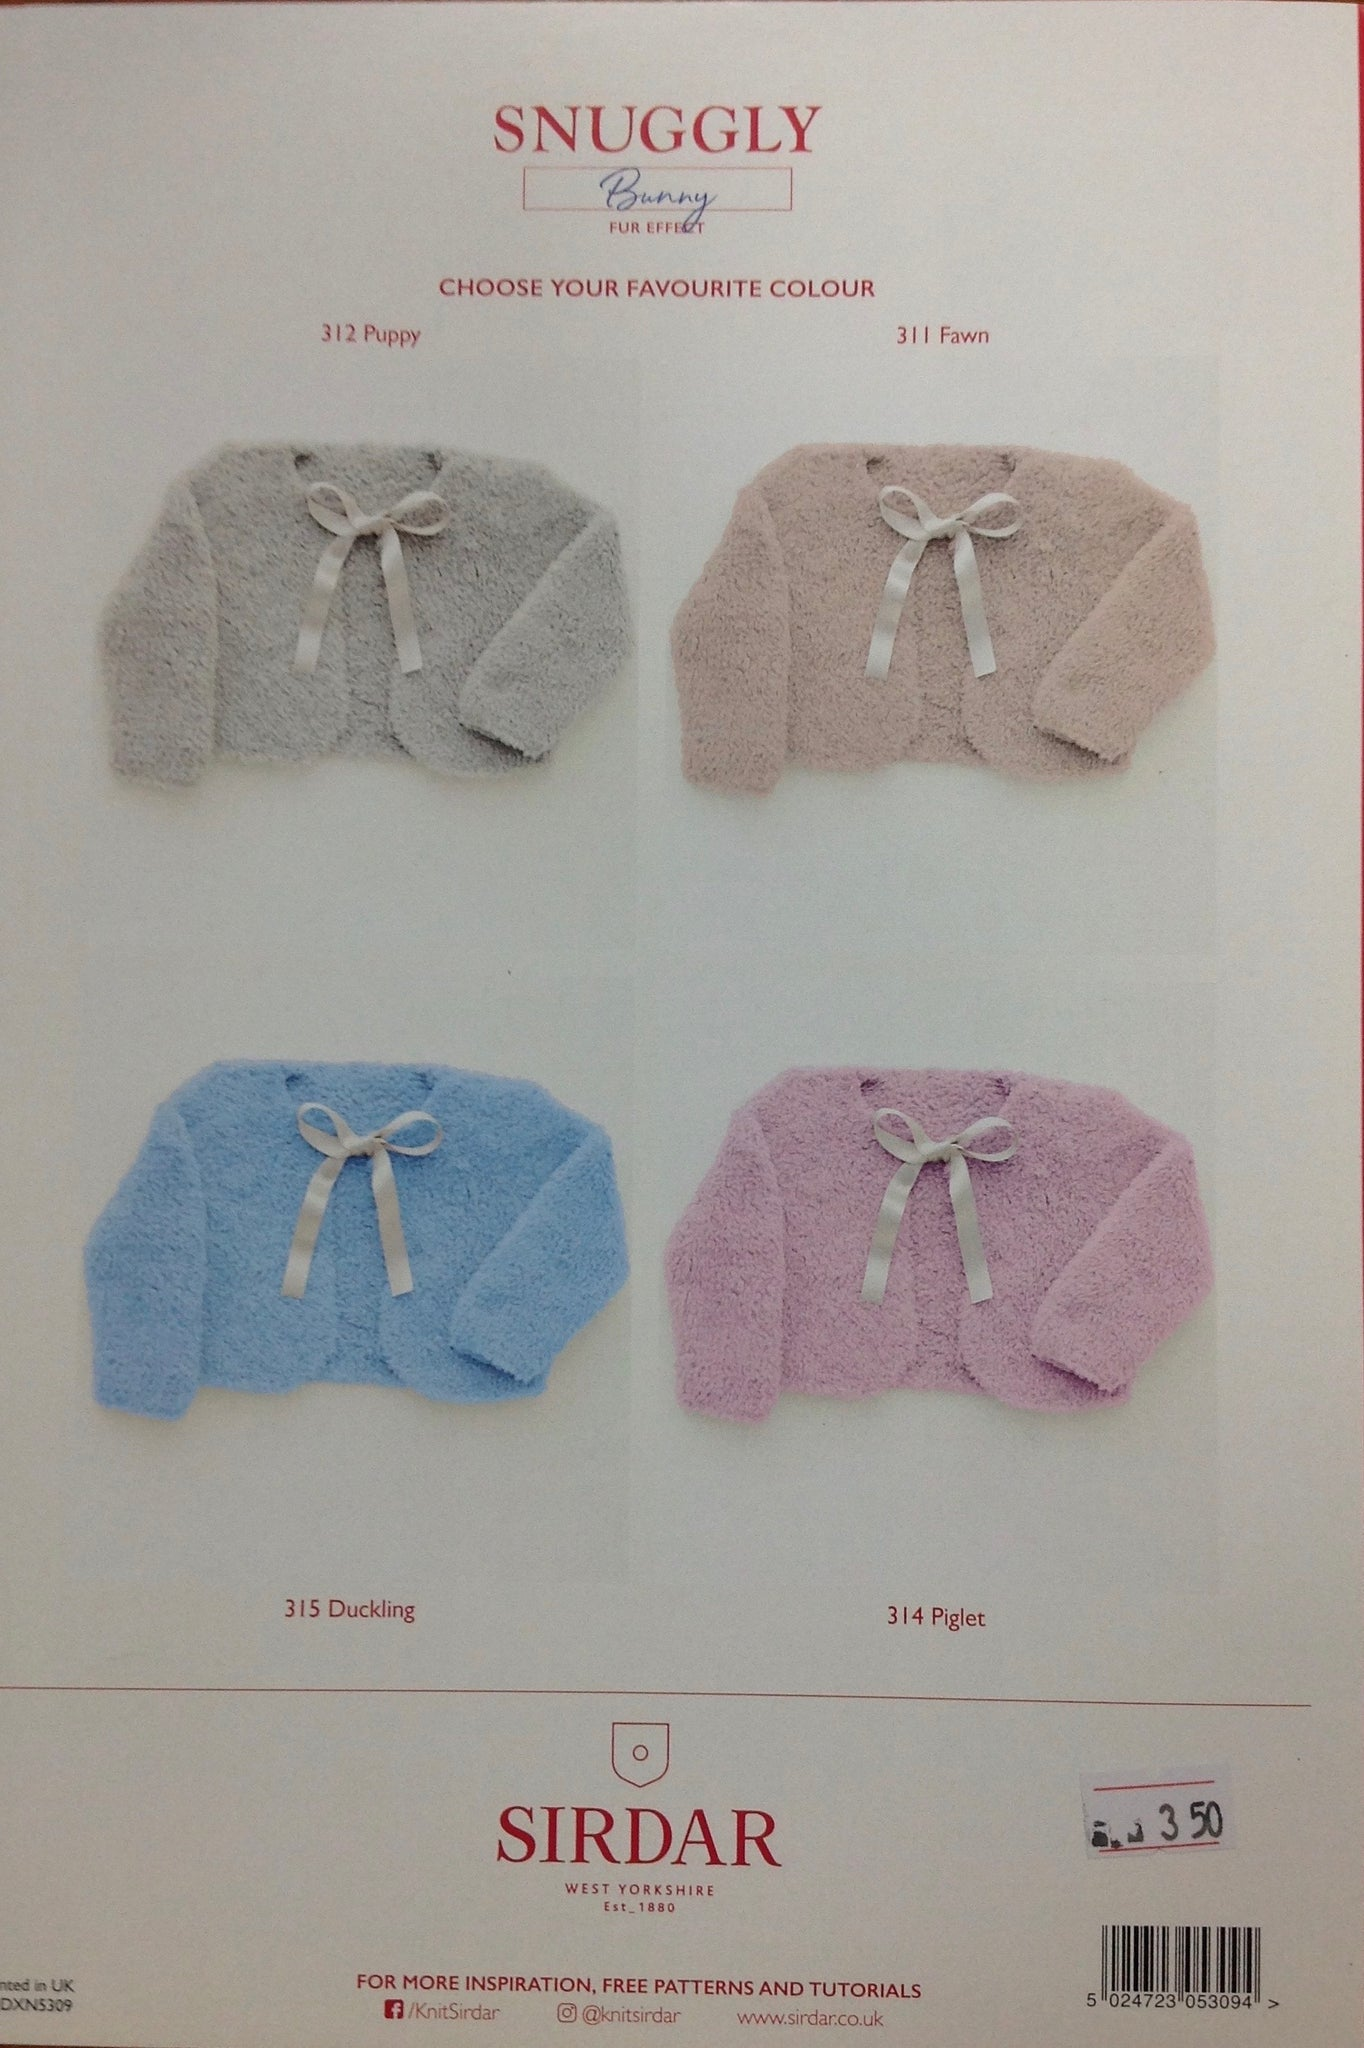 5309 Sirdar Bunny fur effect baby Snuggly bolero knitting pattern